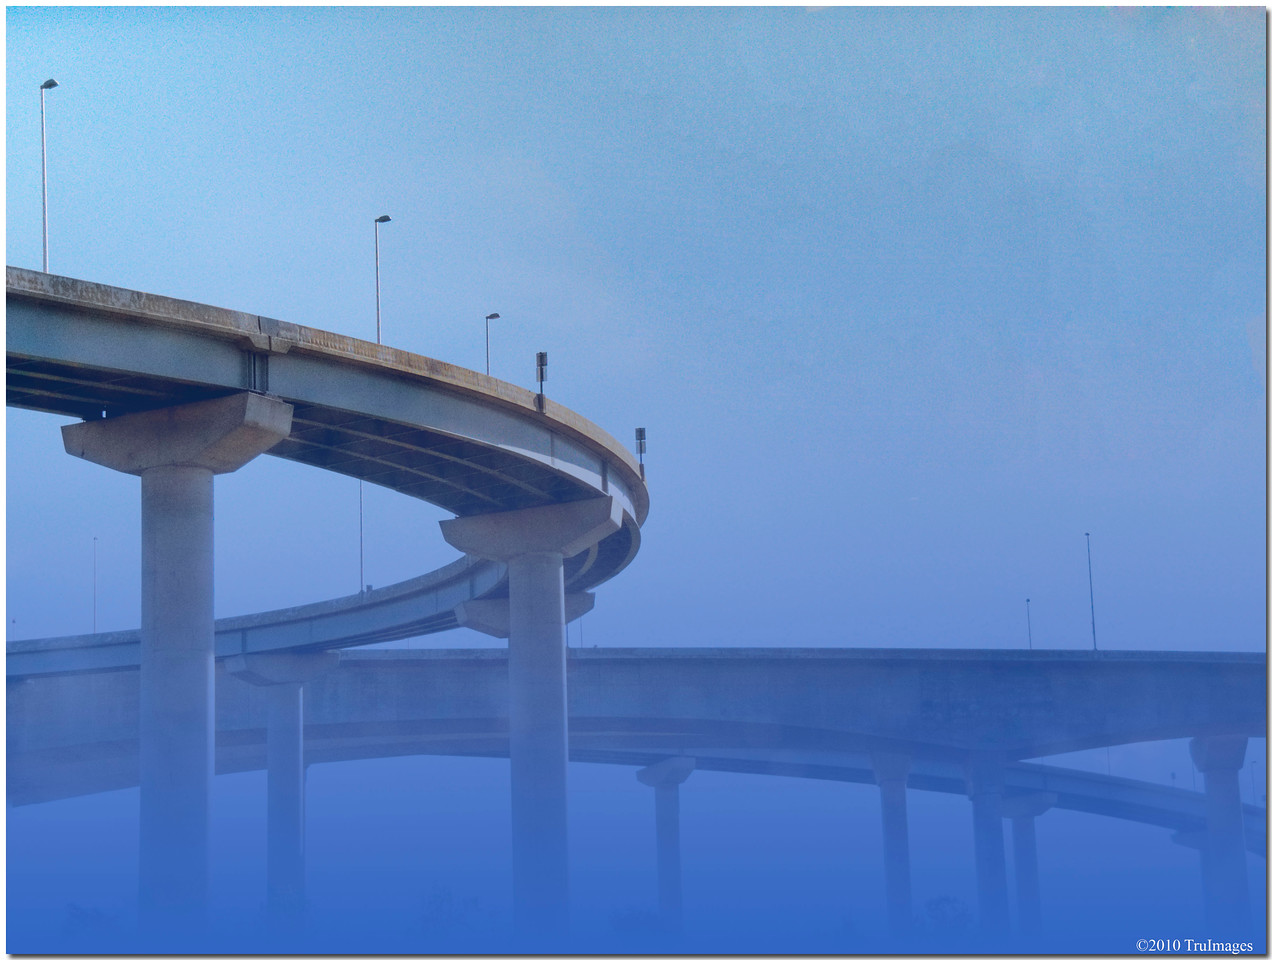 October 25<br /> Bridges in the mist